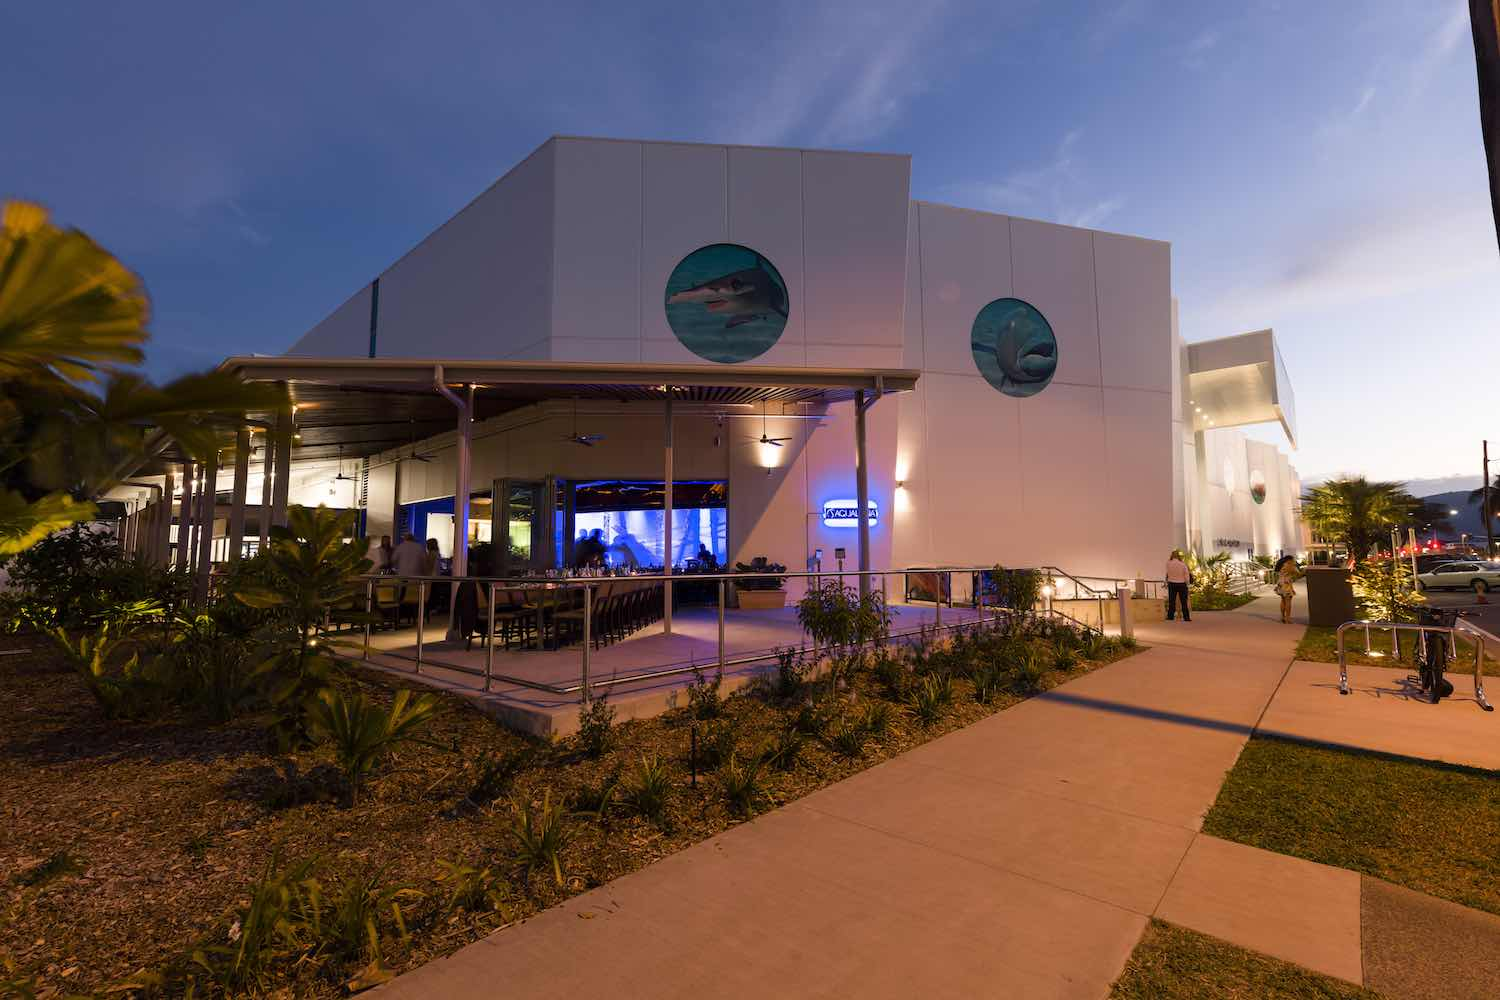 cairns aquarium queensland building exterior